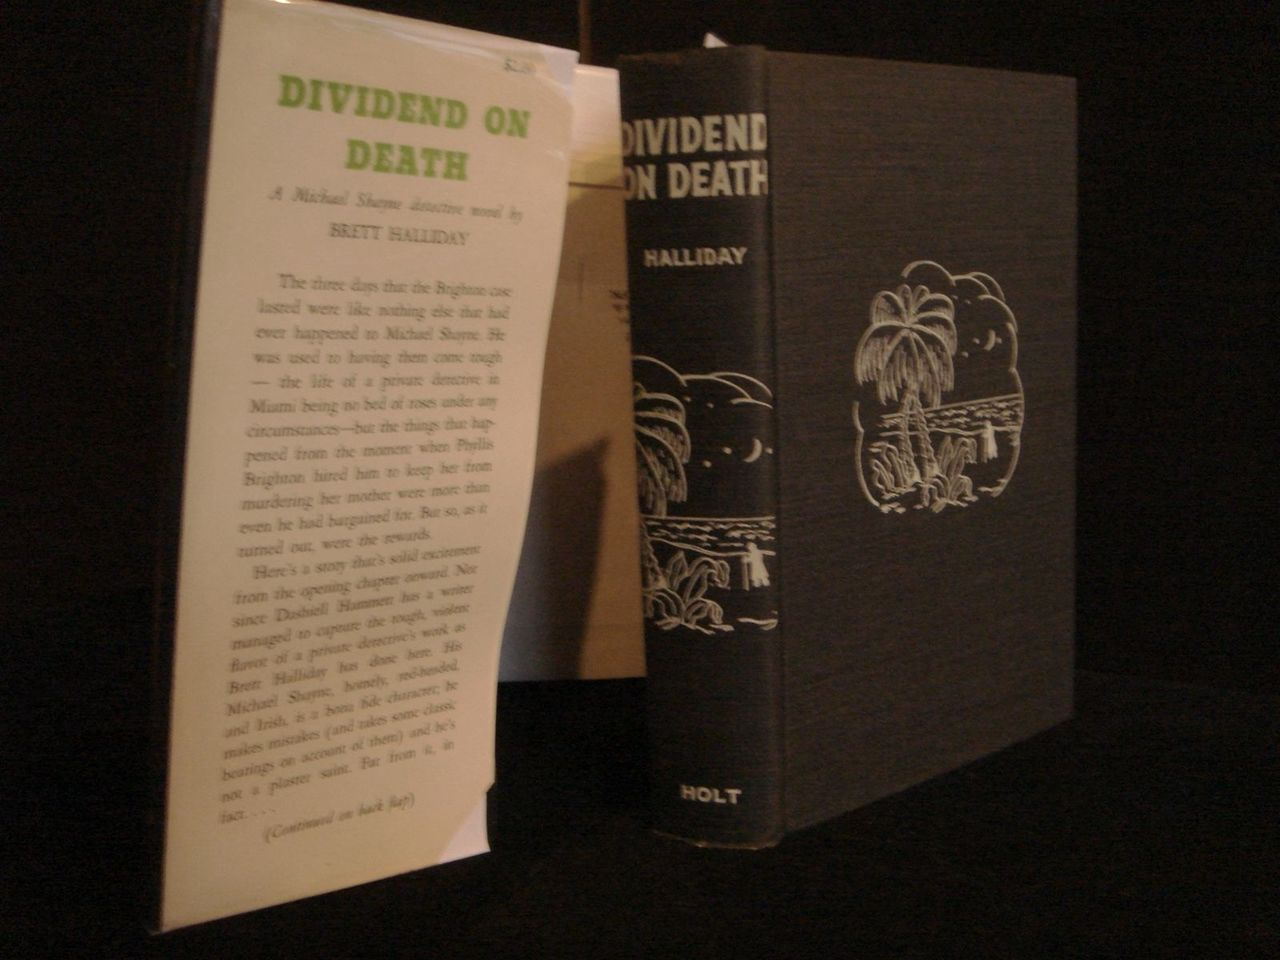 DIVIDEND ON DEATH, by Brett Halliday - 1939 [1st Ed]